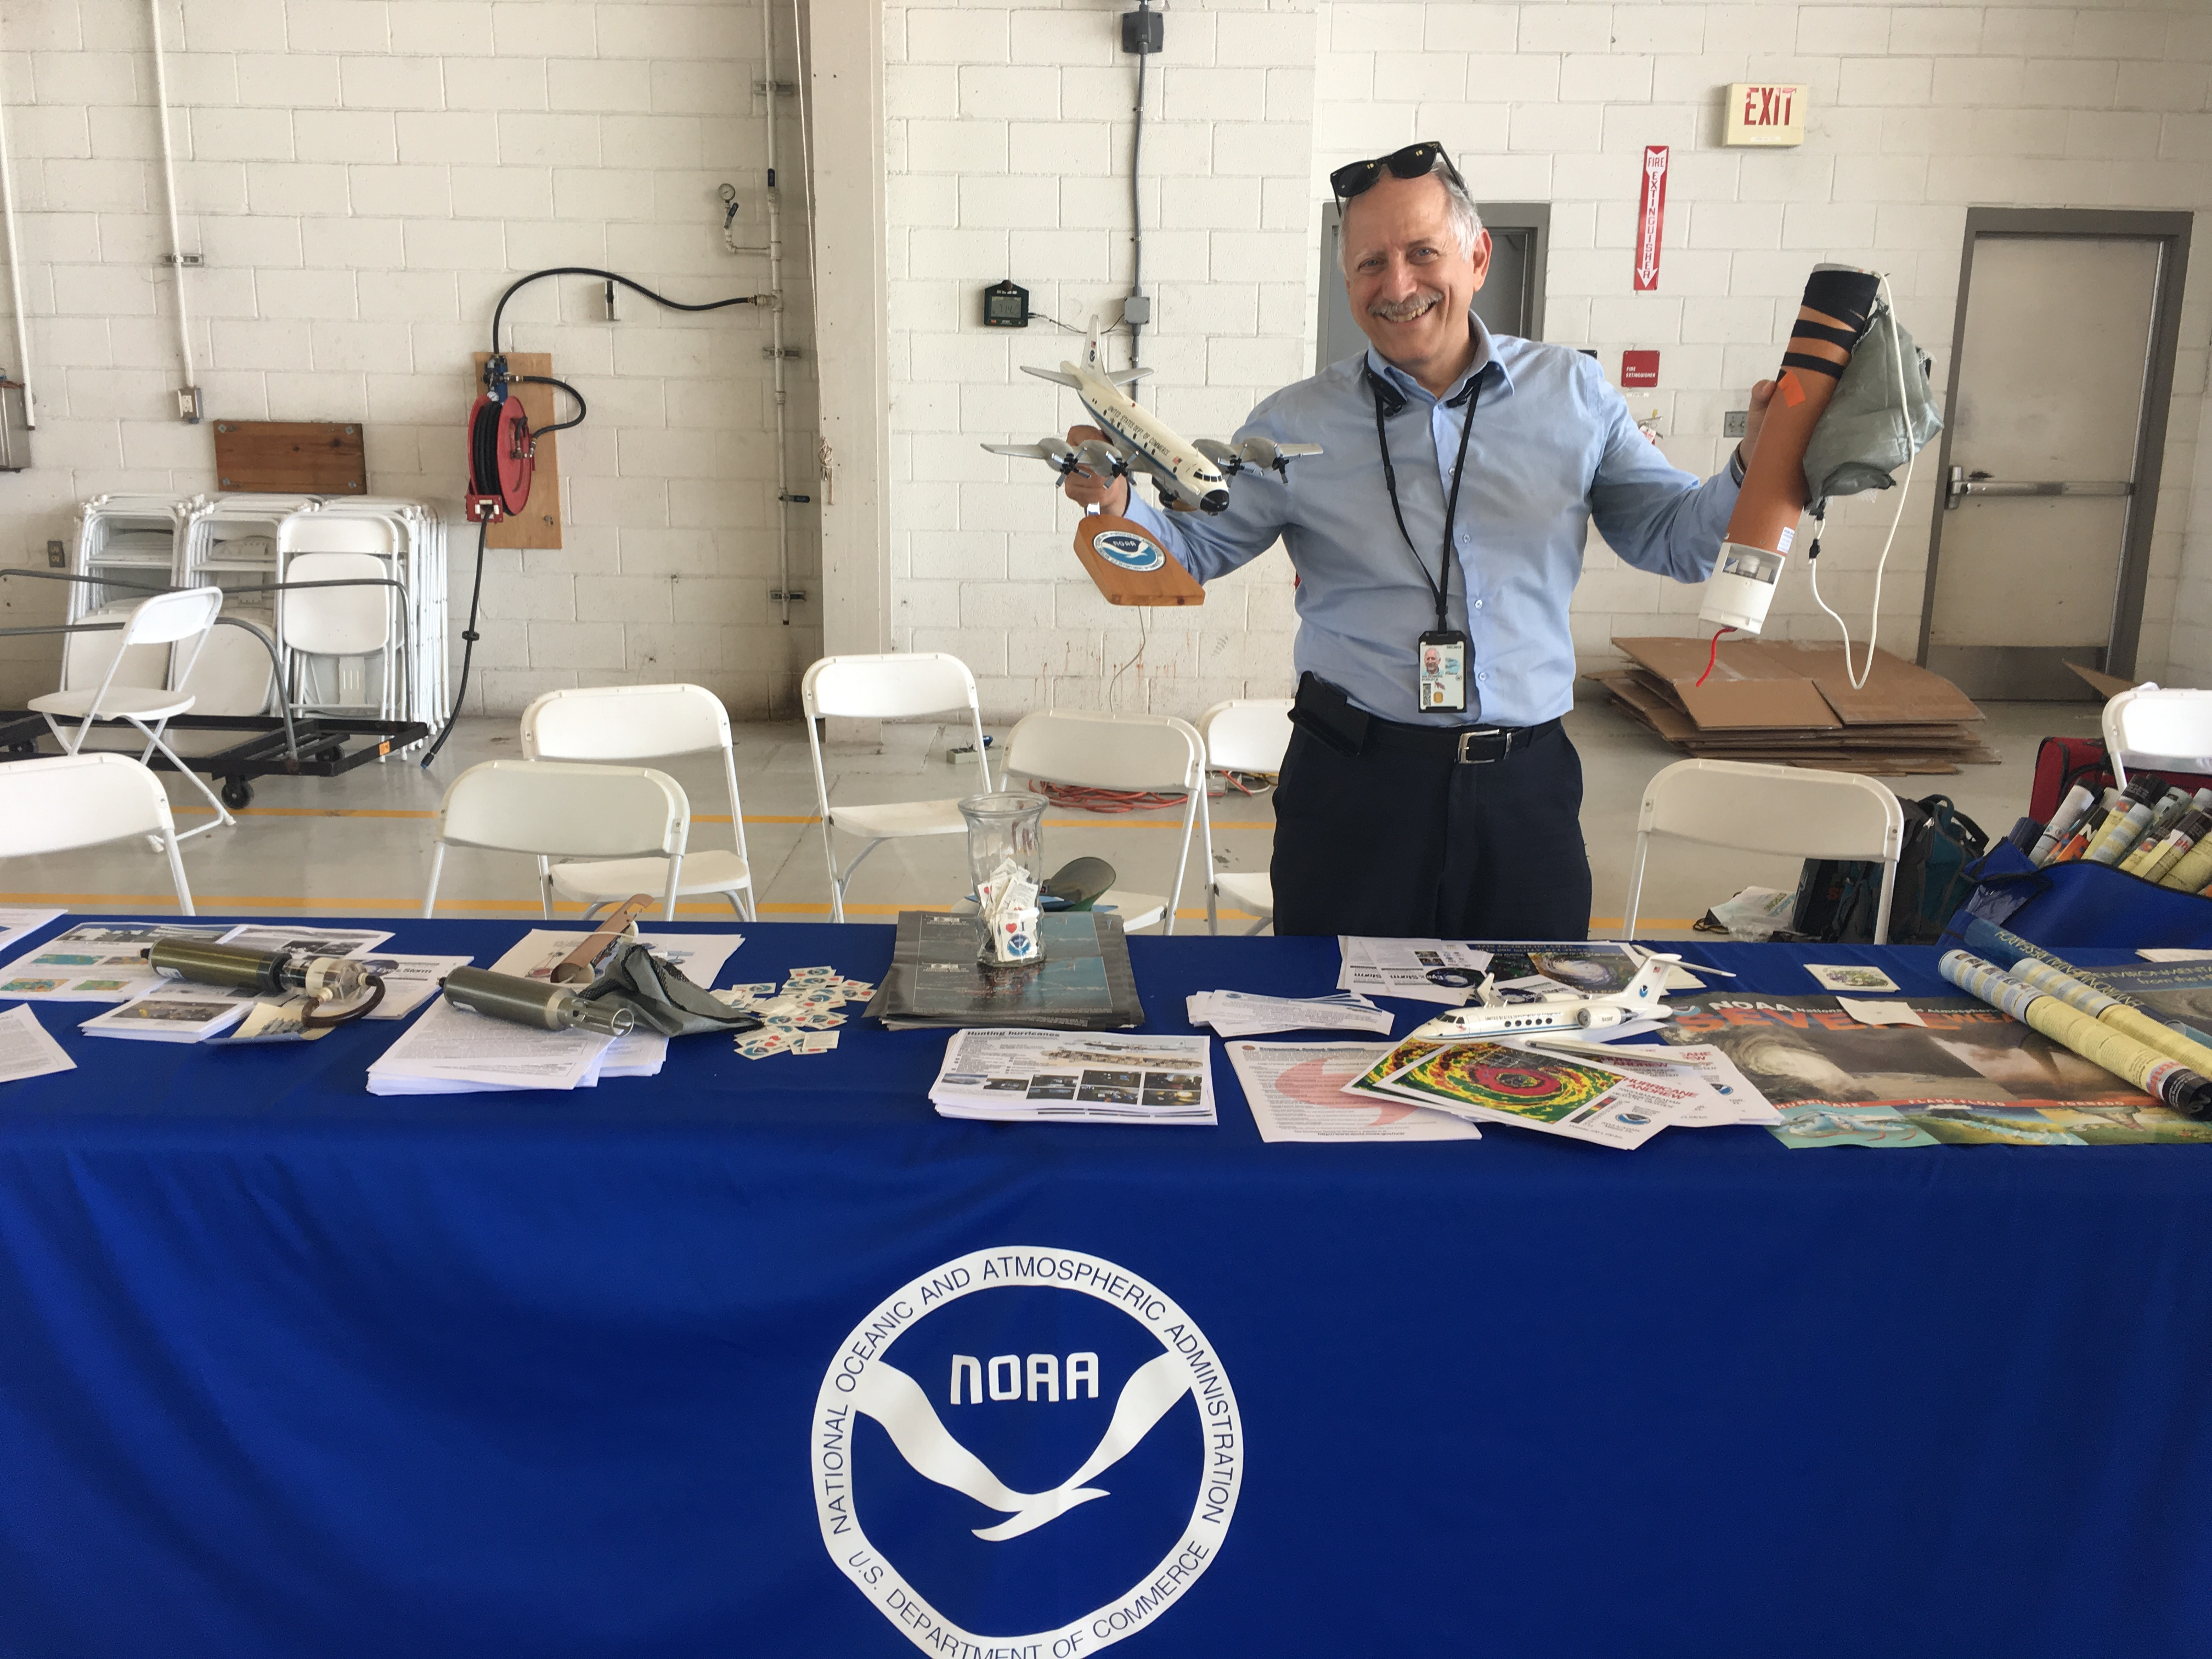 AOML Scientists teaching visitors about hurricane data collection. Image credit: NOAA